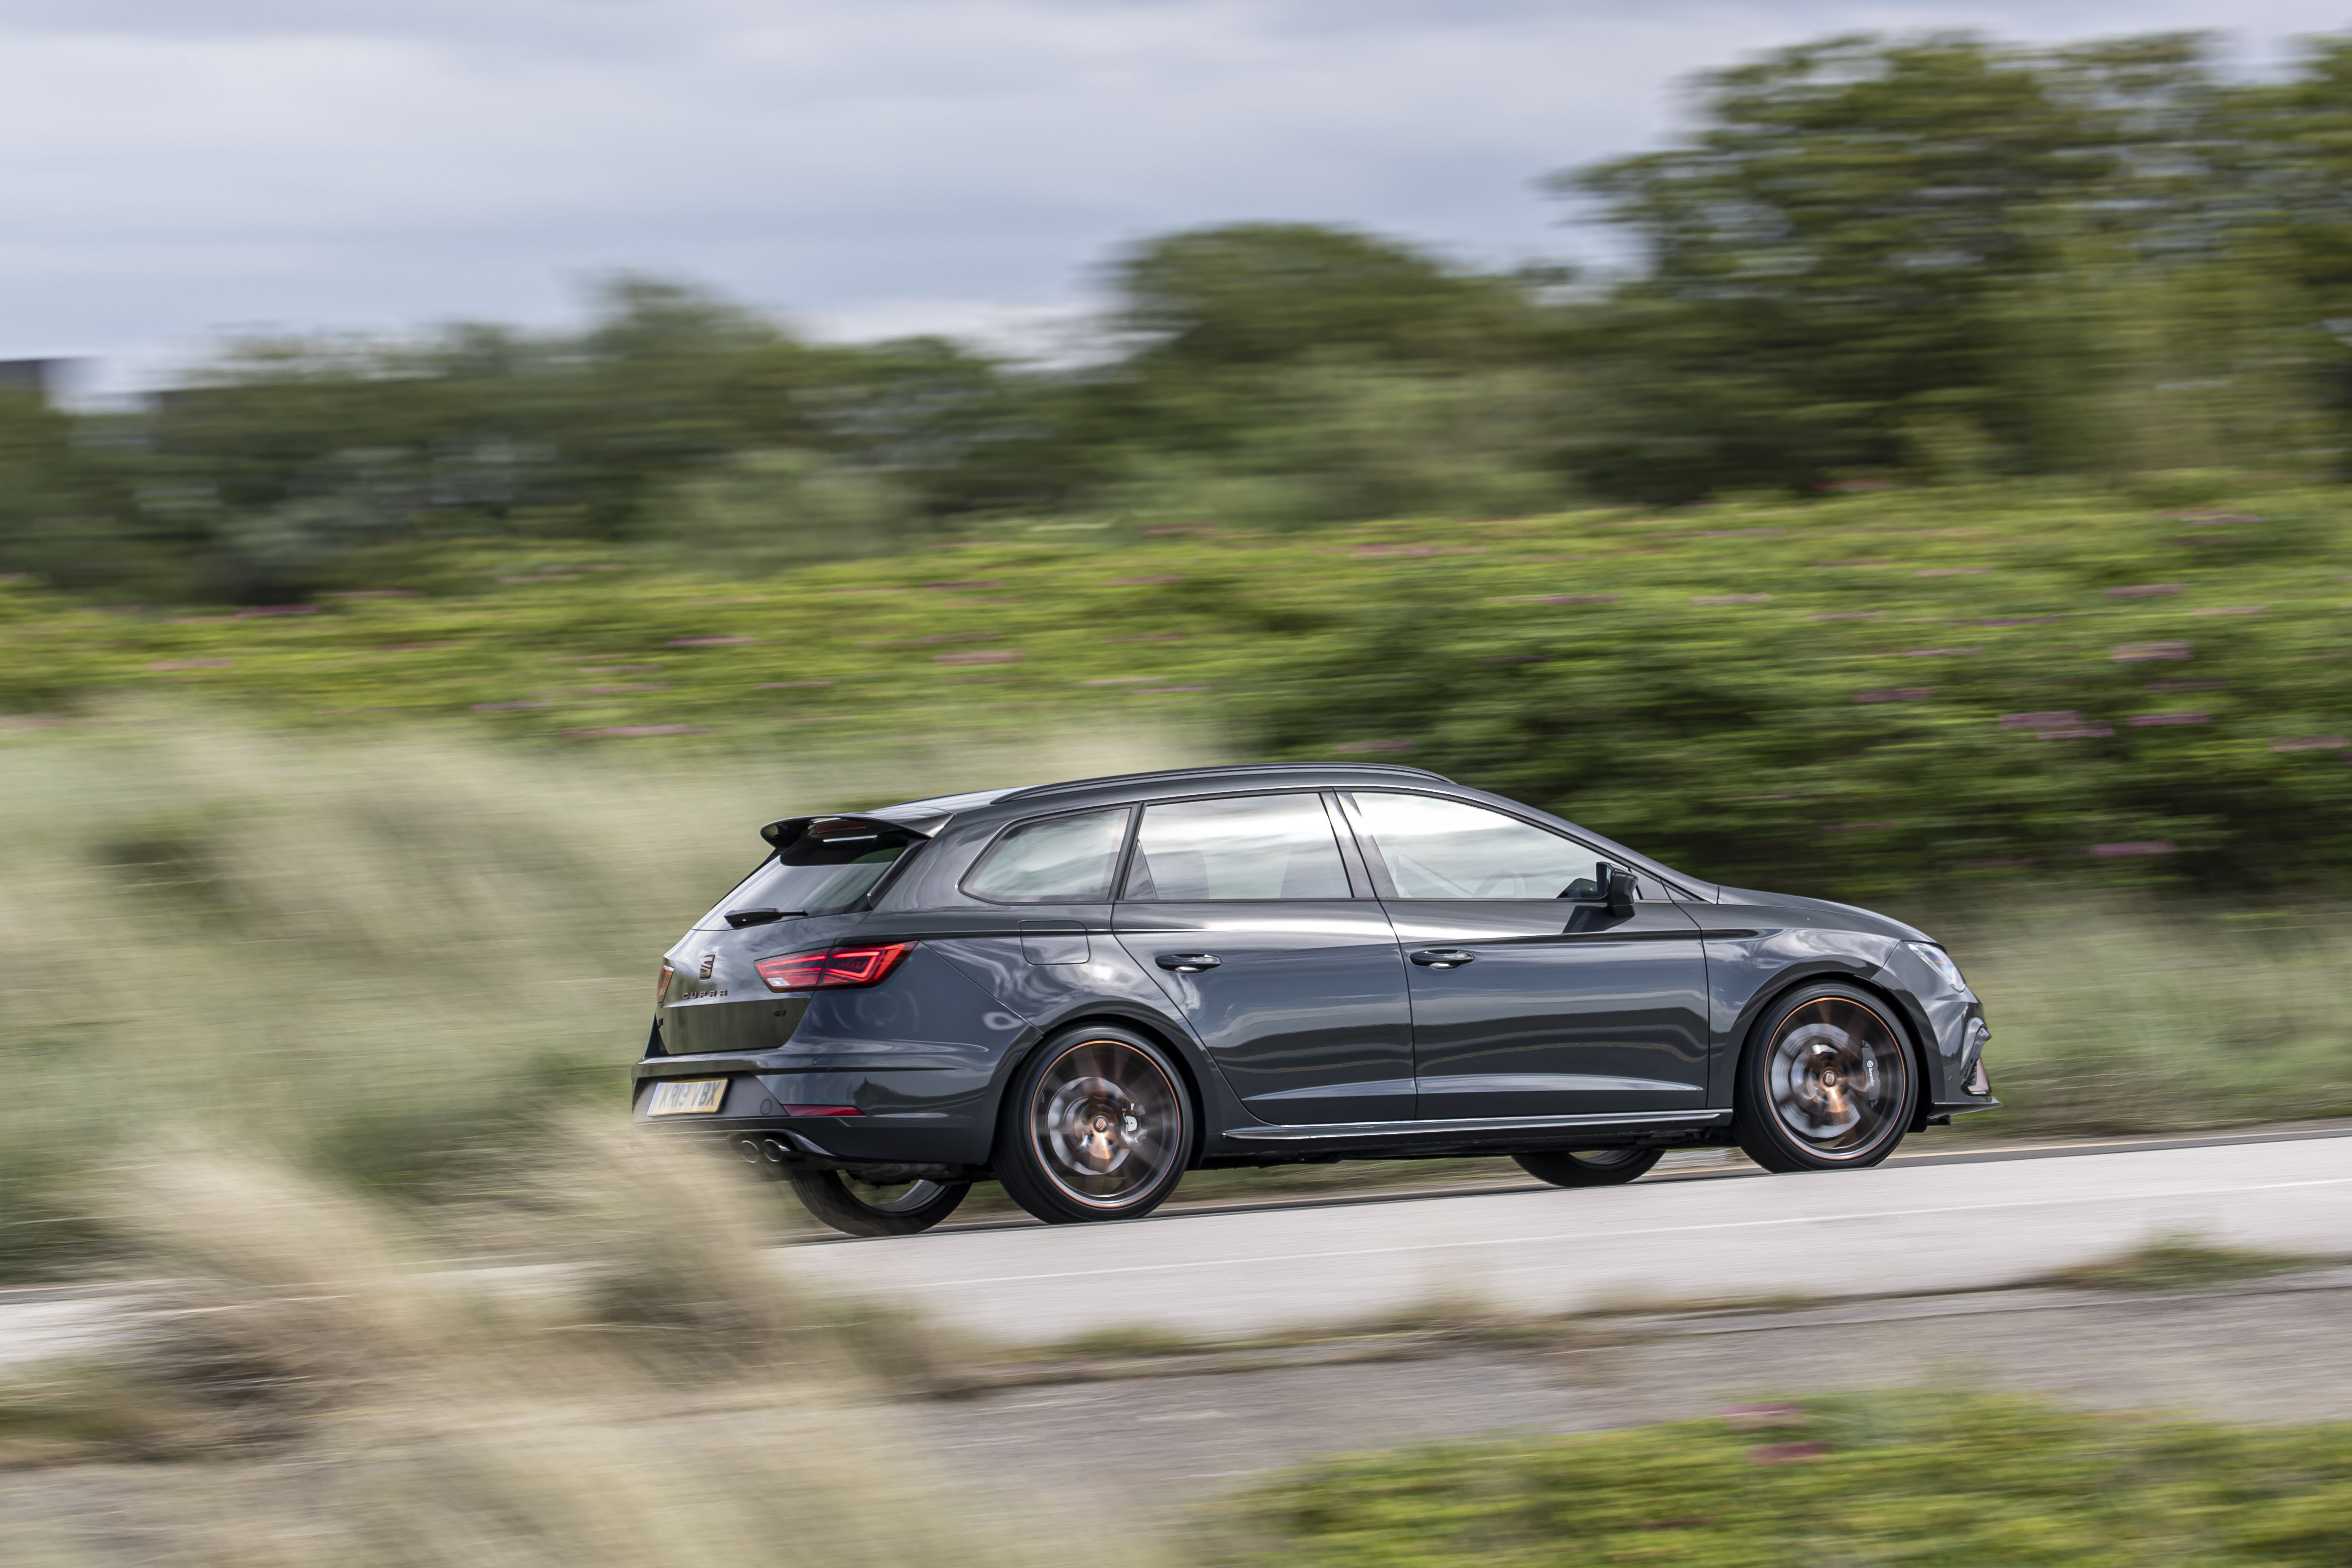 The Cupra R remains compliant even on UK roads